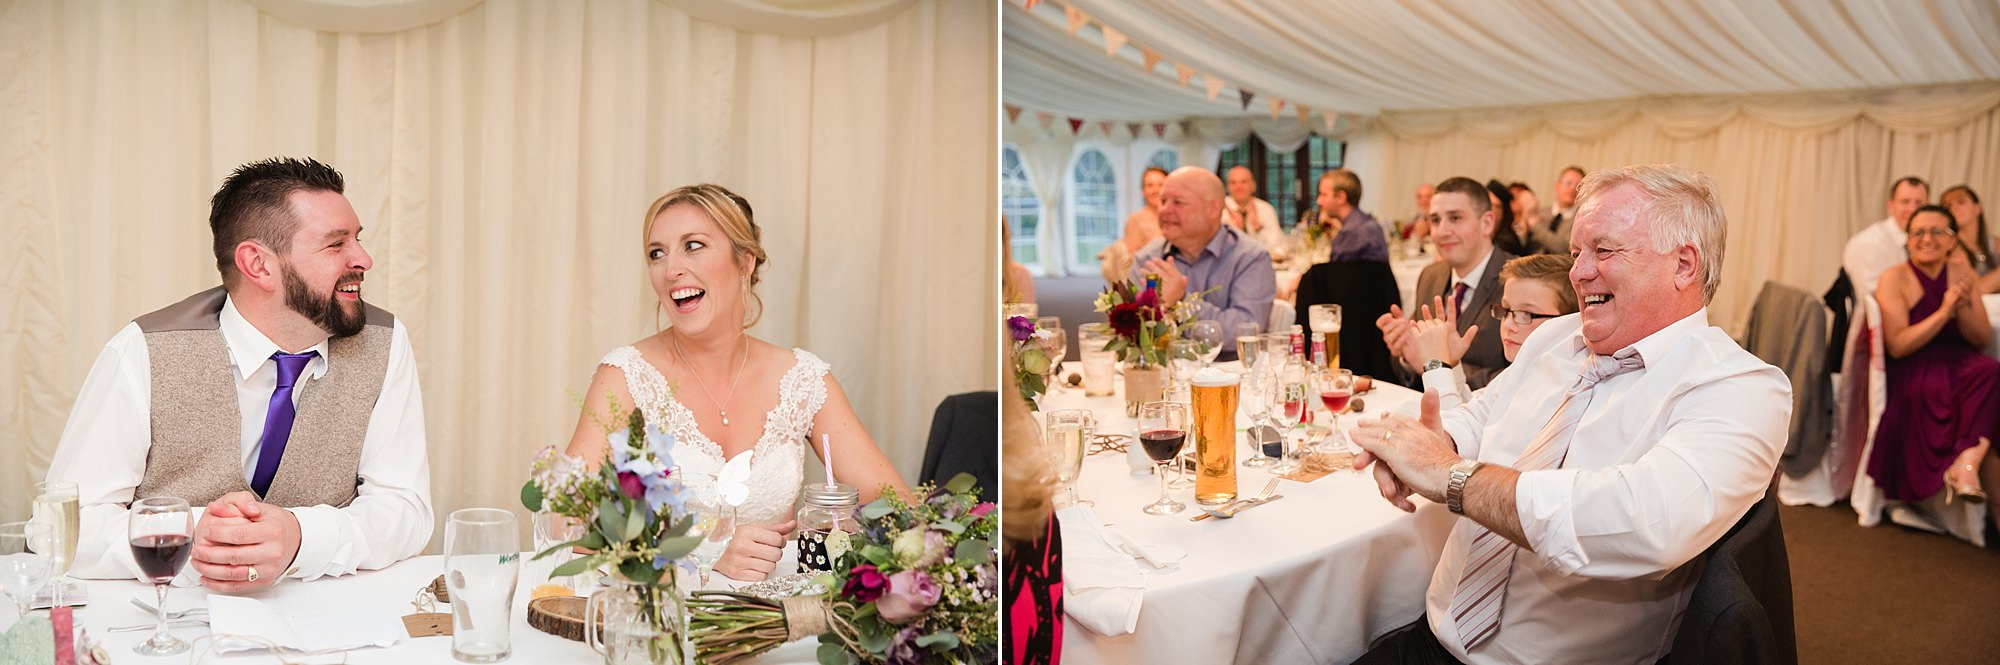 A fun wedding at play Isaf - bride and groom reaction to speeches